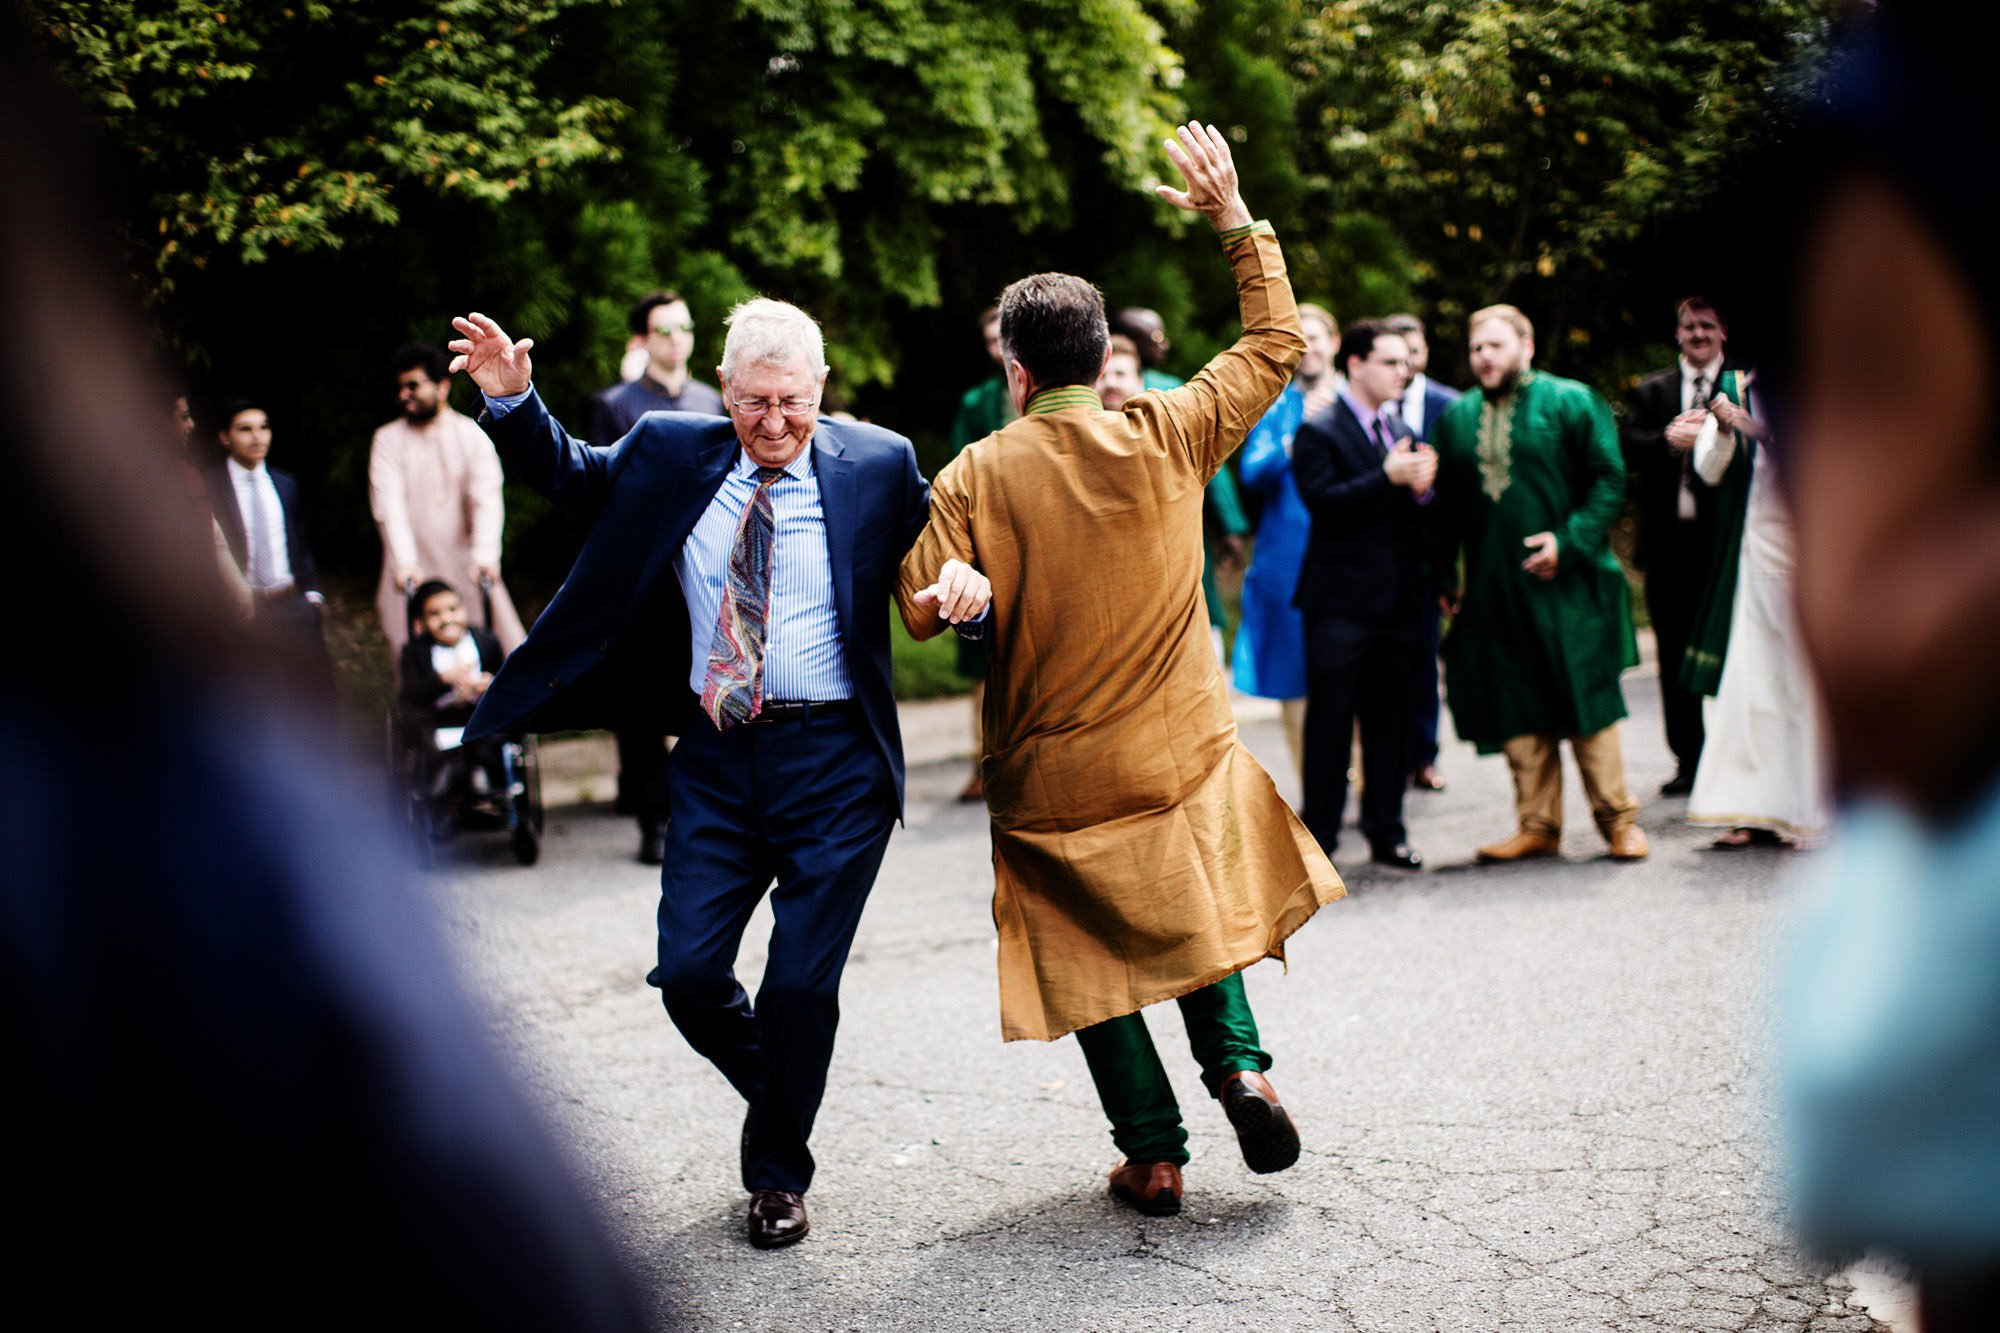 Guests dance in the parking lot during the Baraat outside of this Foxchase Manor wedding in Manassas, VA.